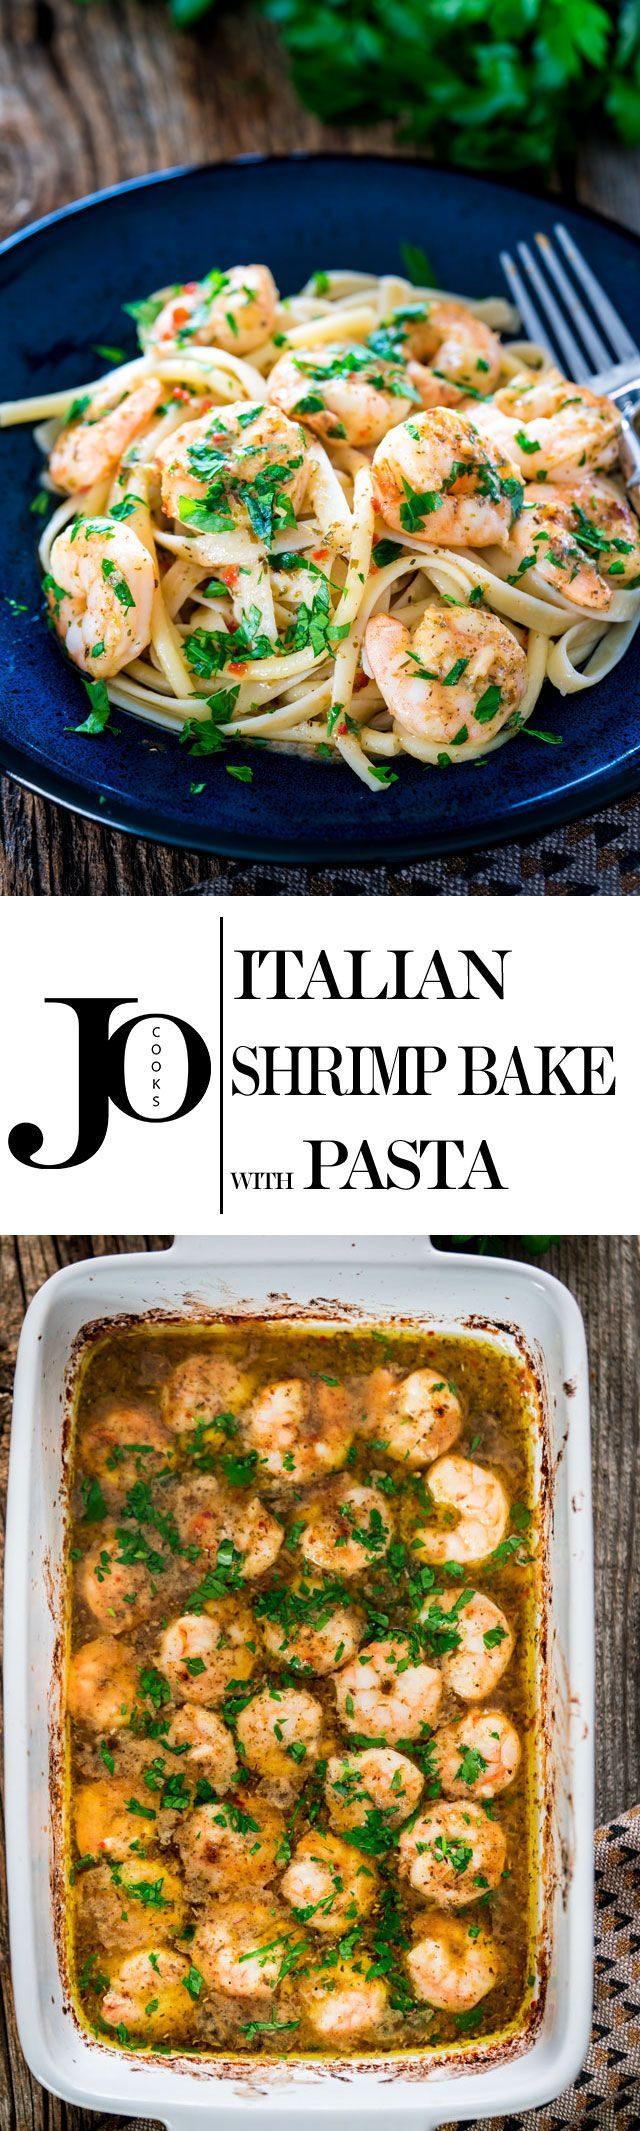 Italian Shrimp Bake with Pasta - couldn't get any easier than pasta dish and it…